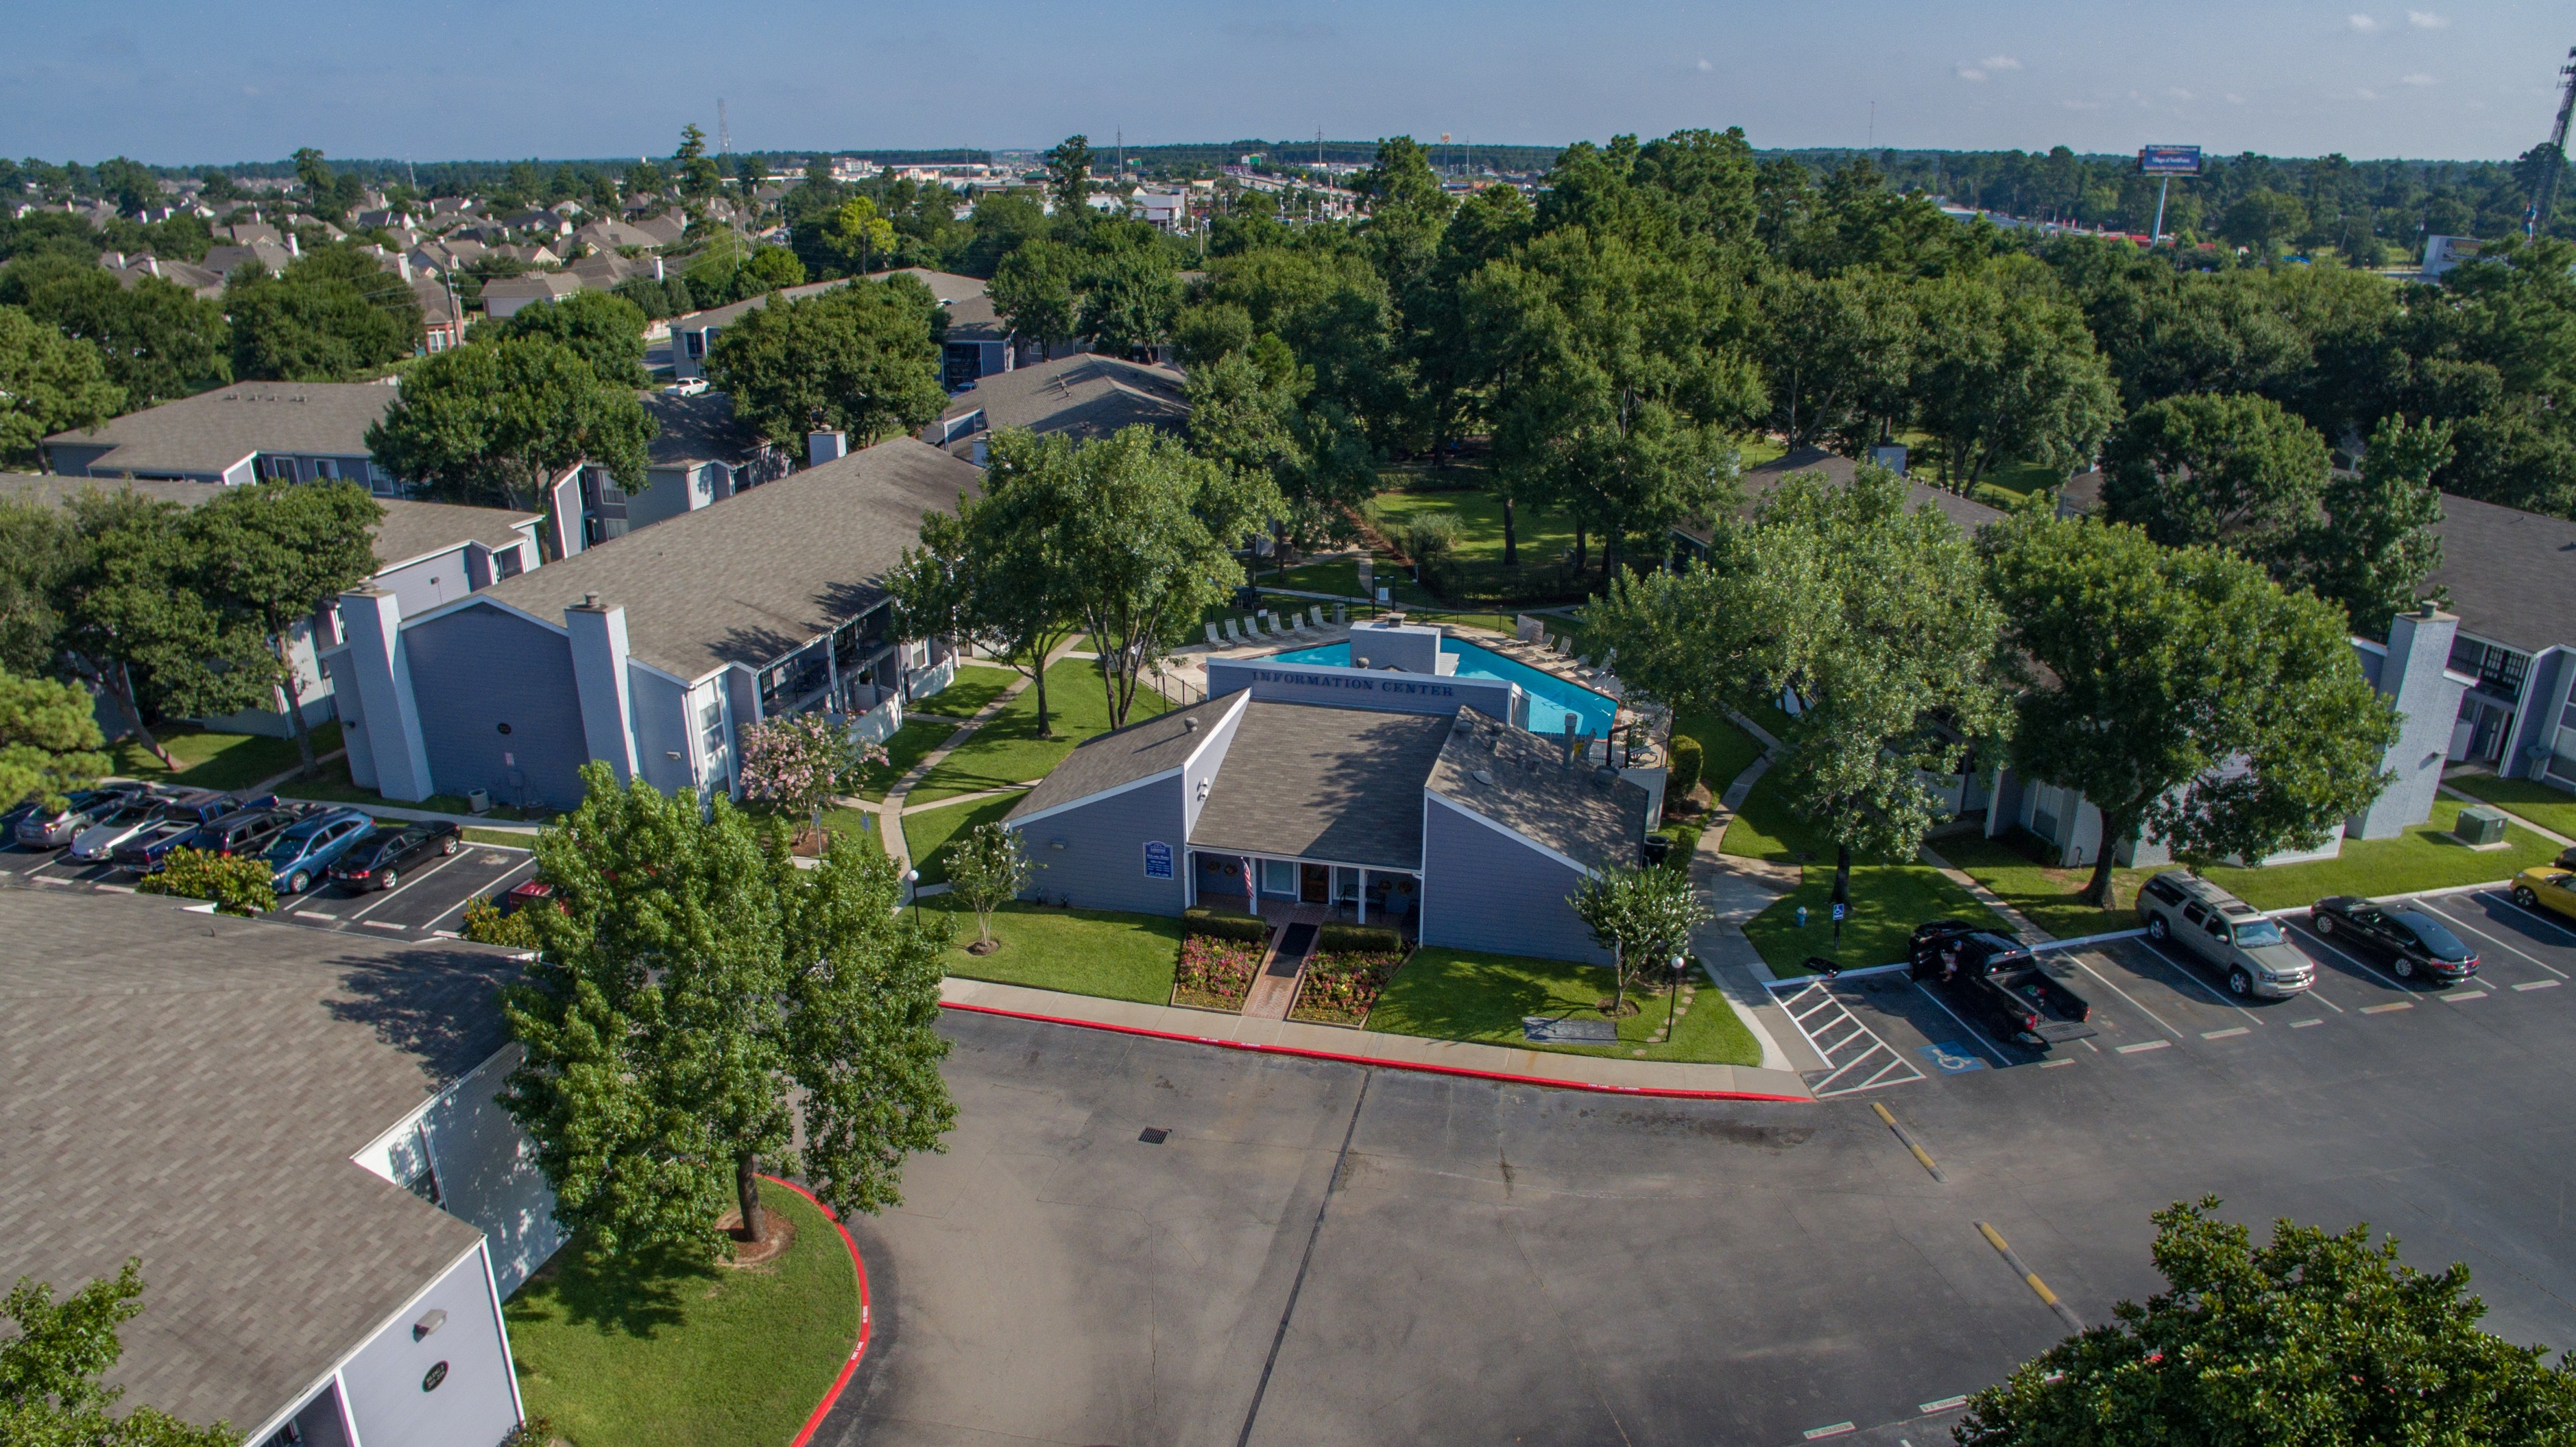 Lakewood Apartments - Tomball, TX Apartments for rent